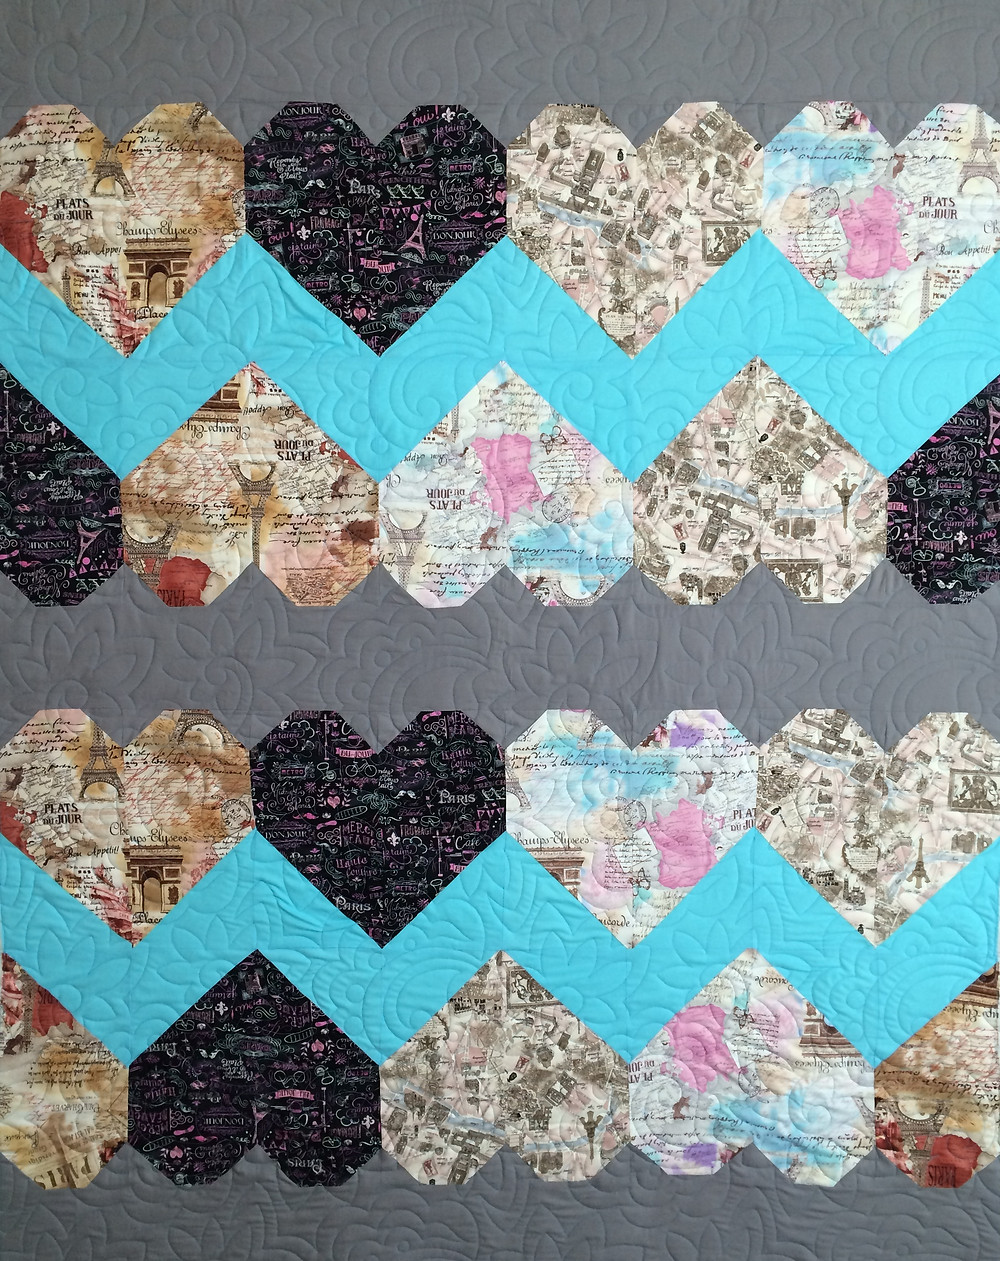 Jennifer Zig Zag Paris Theme Heart Quilt